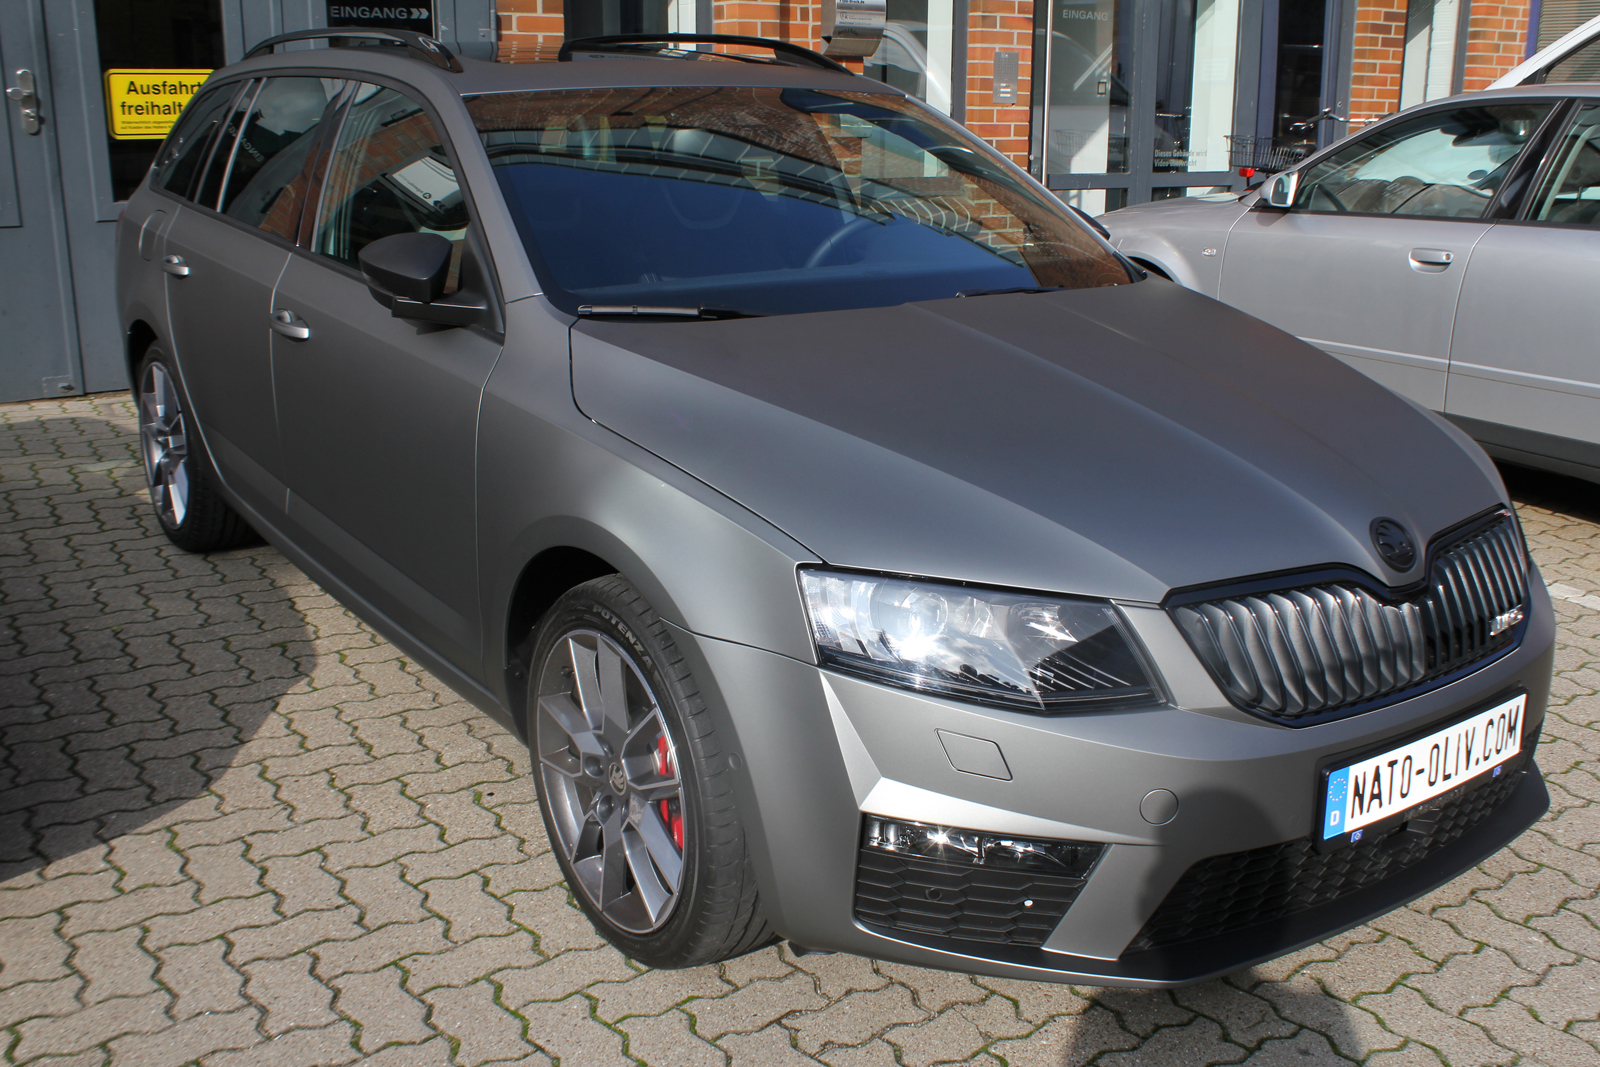 SKODA_COMBI_RS_FOLIERUNG_GUNMETAL_MATT_METALLIC_02